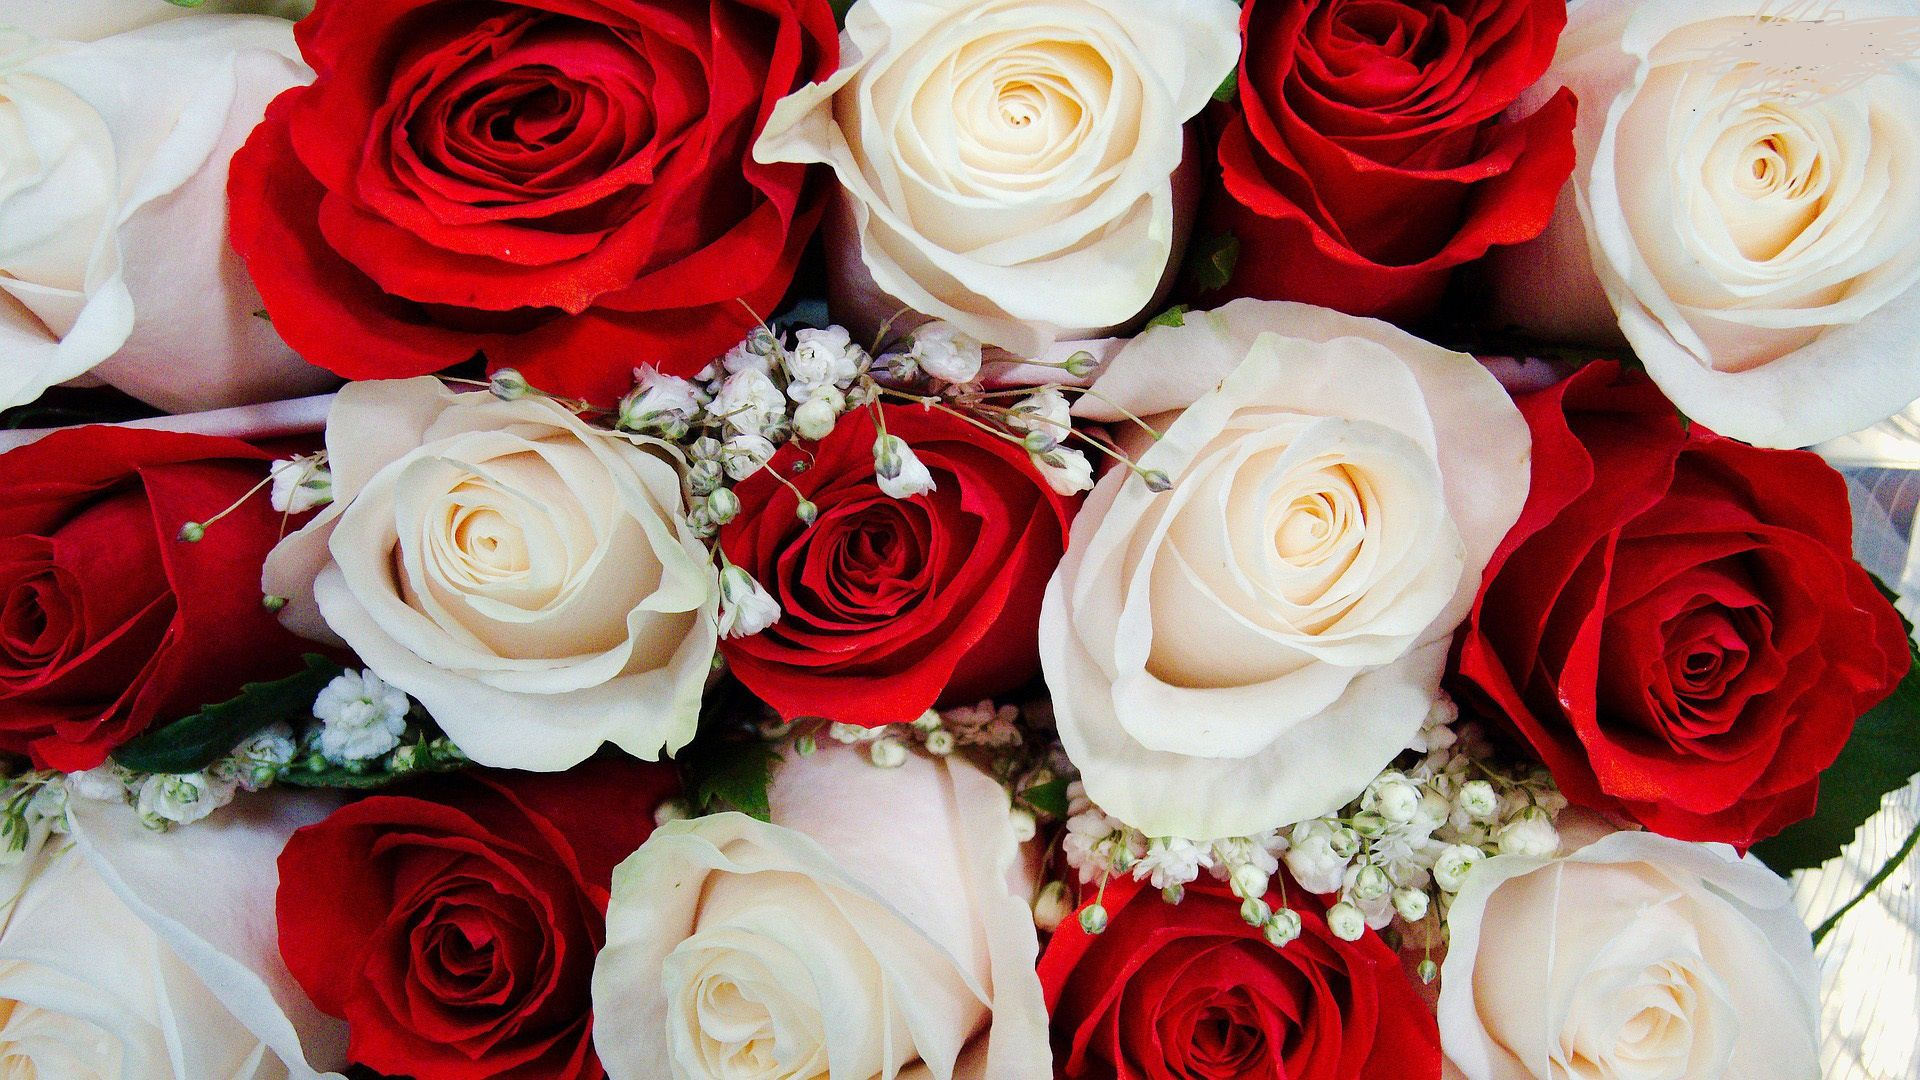 Amazing Red White Roses Free Wallpapers Hd White Roses Wallpaper Red And White Roses Red Roses Wallpaper